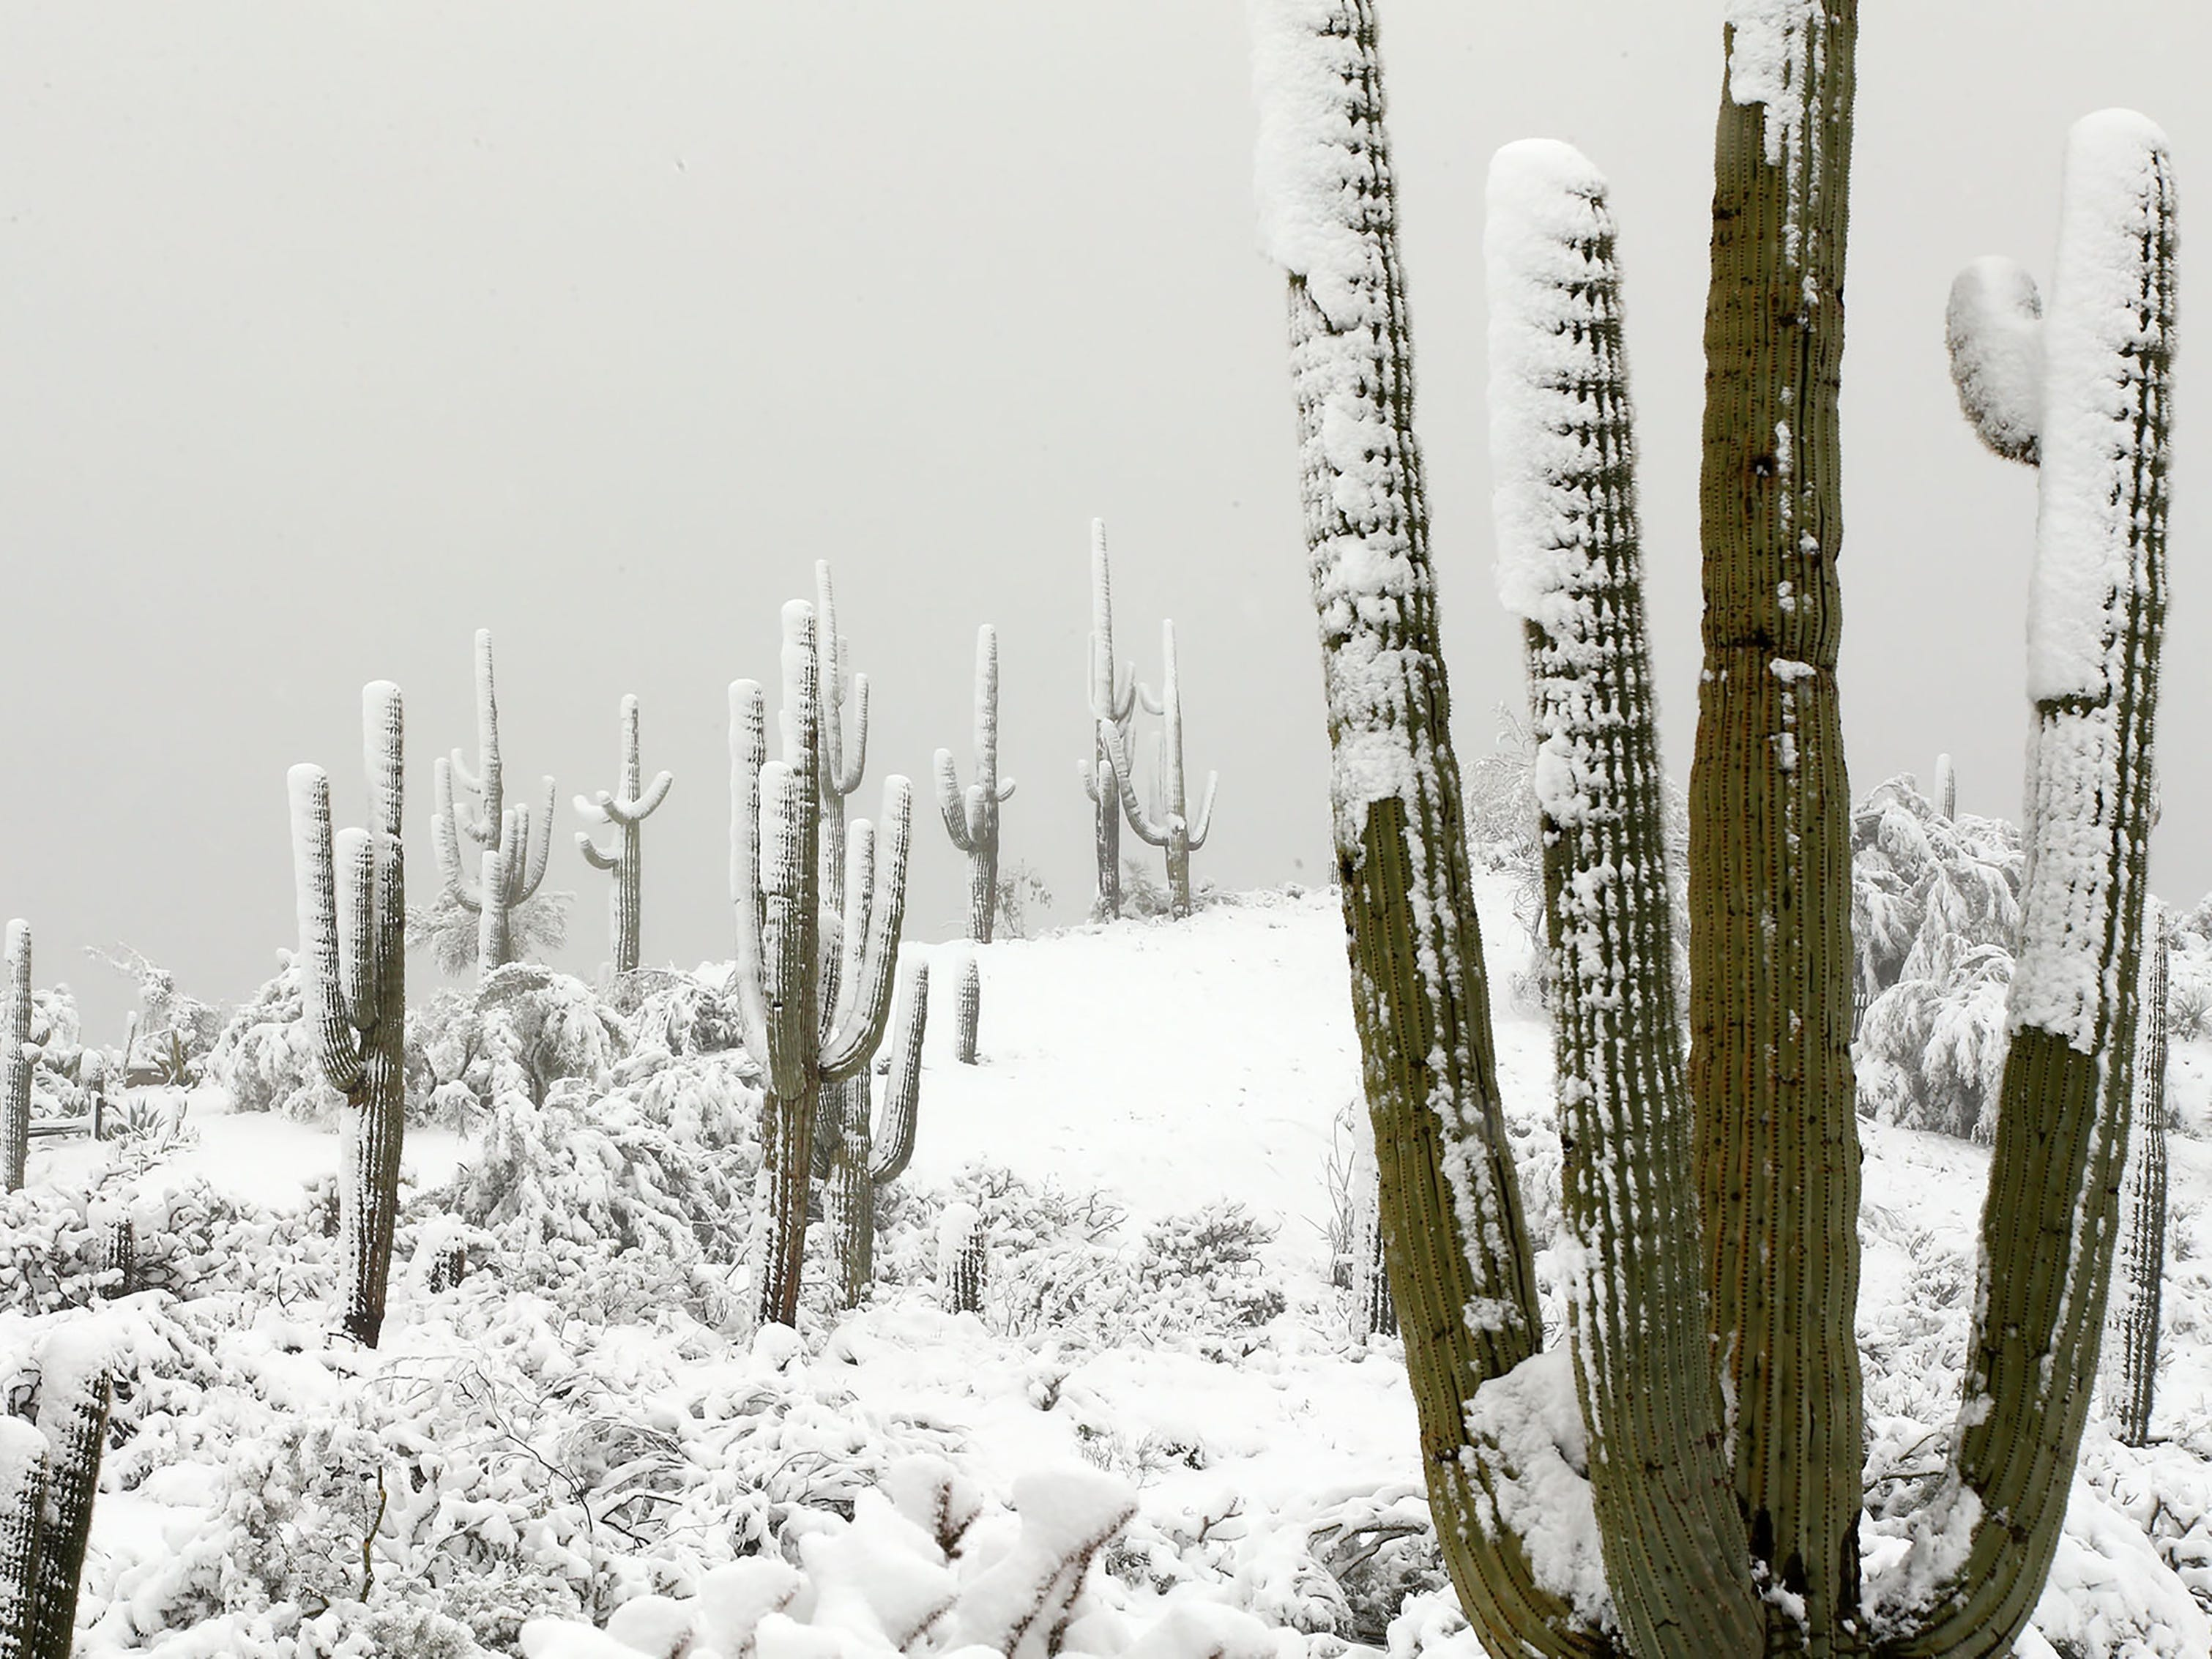 A powerful winter storm brought six inches of snow to the area around Pinnacle Peak on Feb. 22, 2019 in Scottsdale, Ariz.